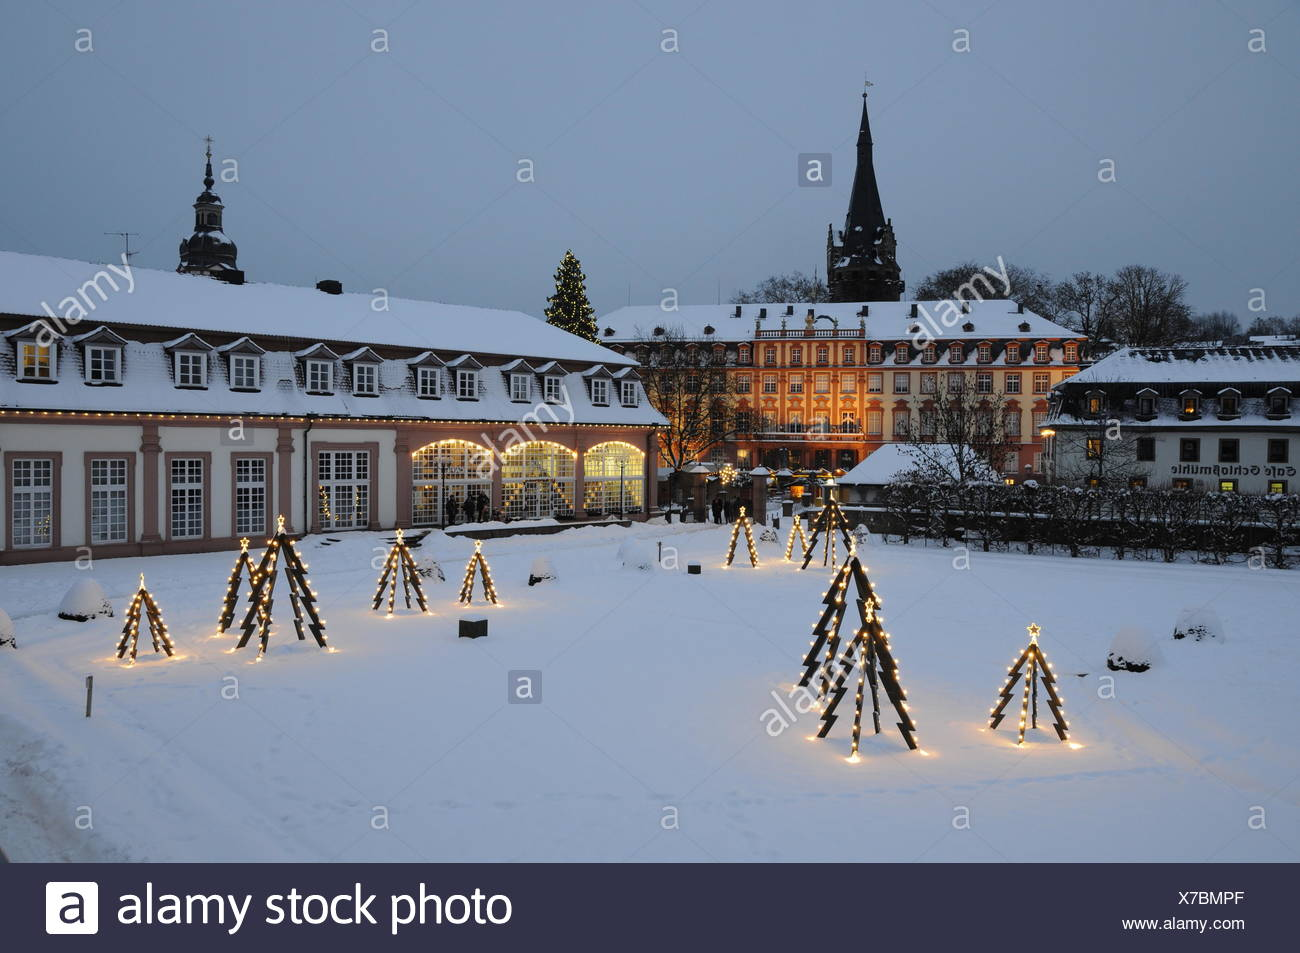 Weihnachtsbeleuchtung Schneefall.Lustgarten Winter Stock Photos Lustgarten Winter Stock Images Alamy